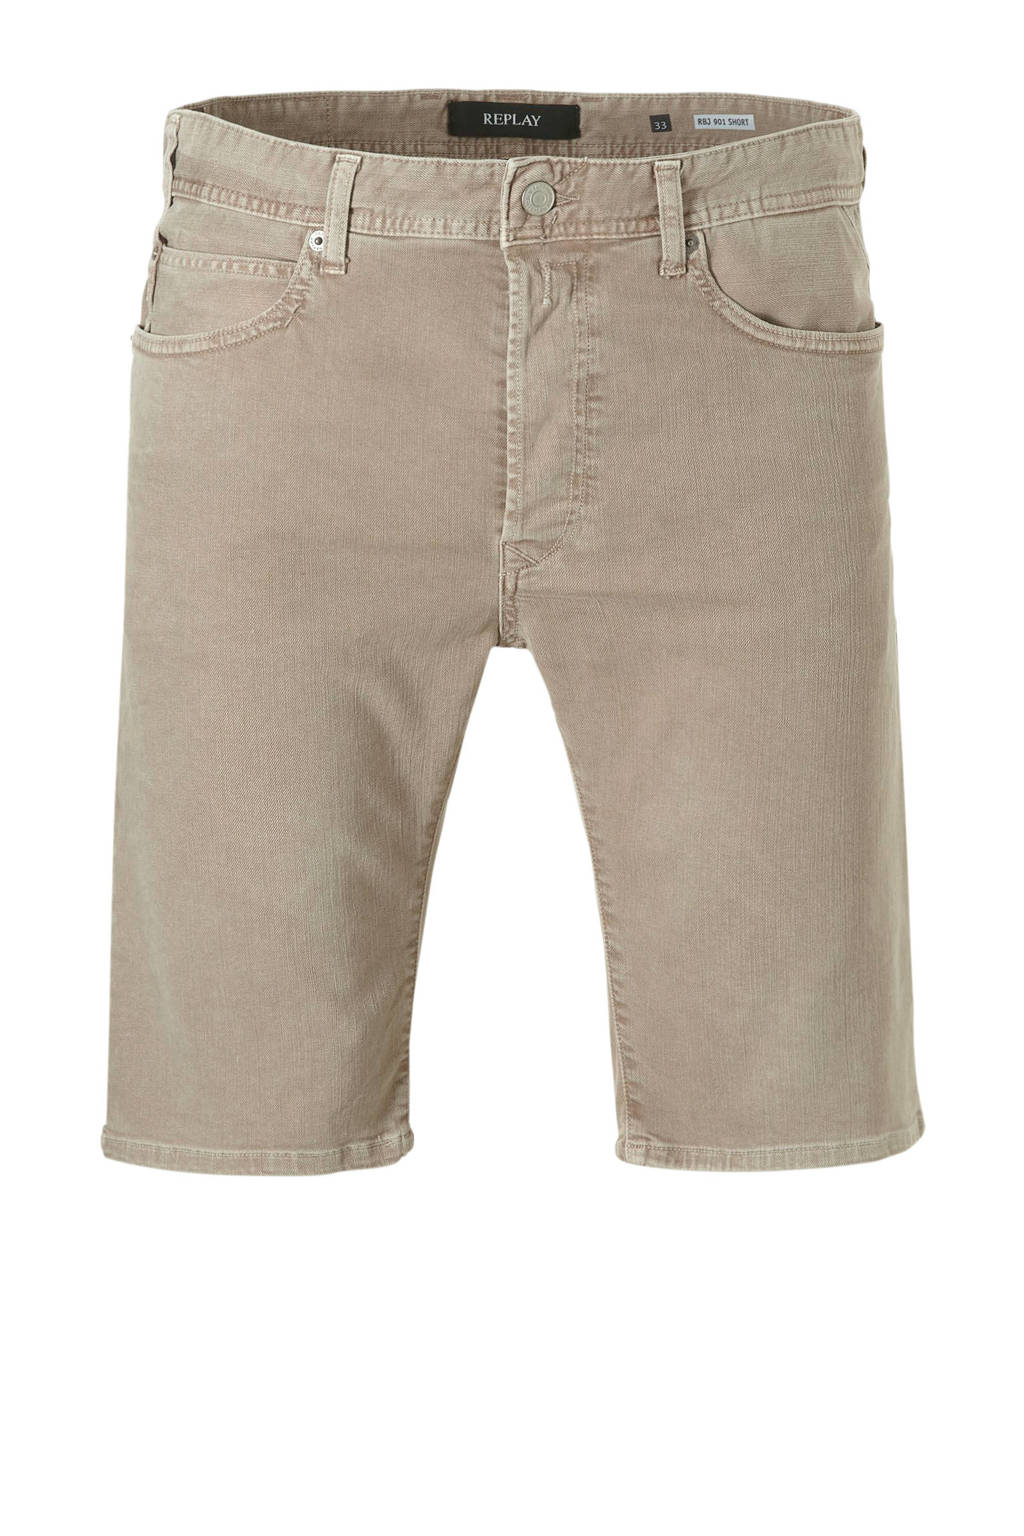 REPLAY regular fit jeans short, sand